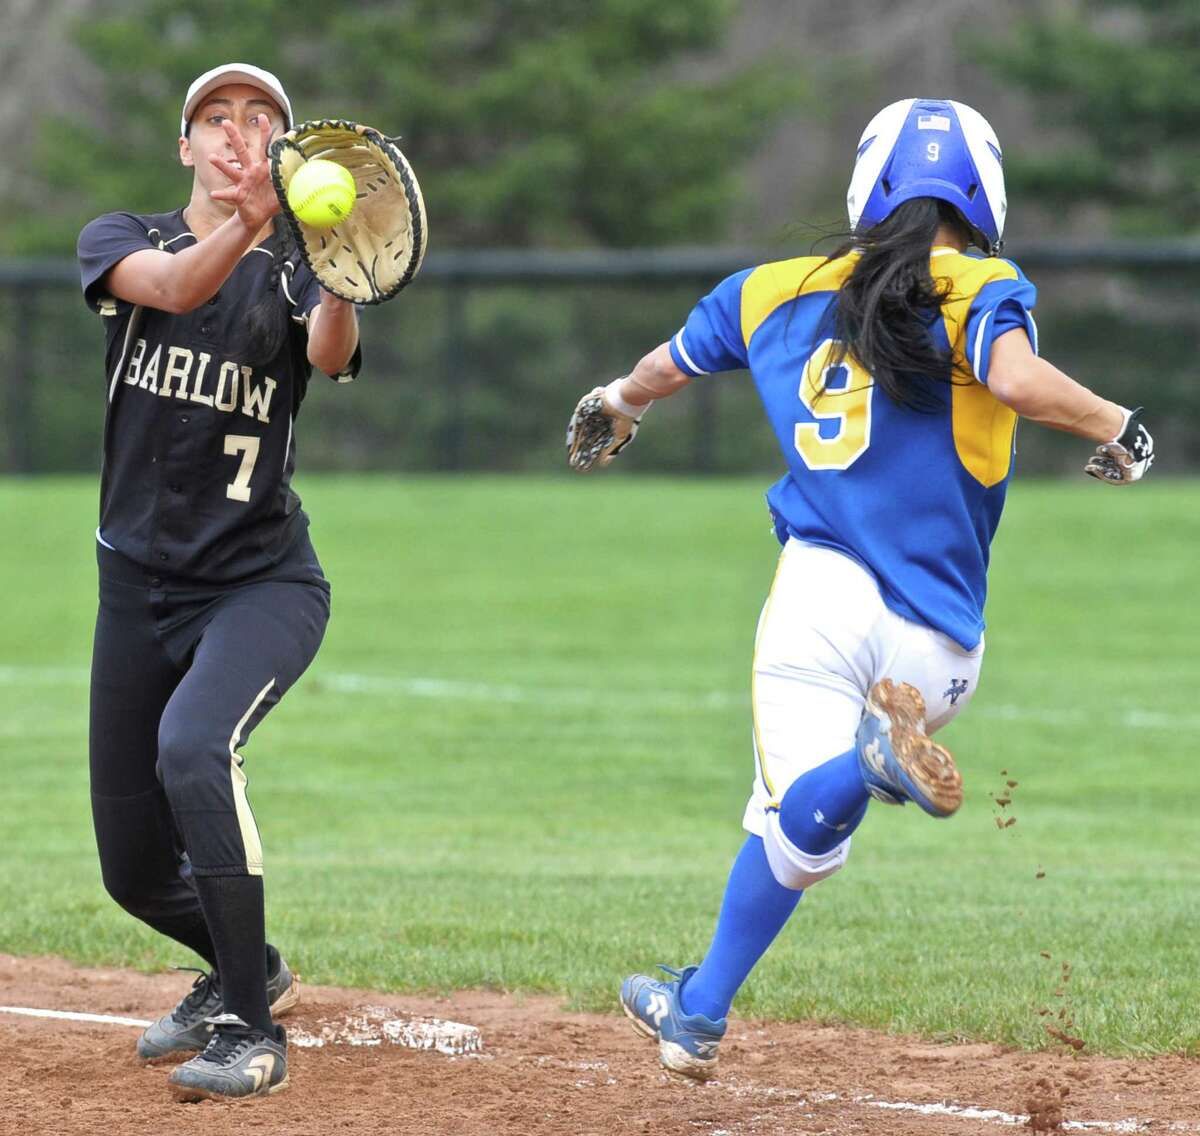 Joel Barlow's Zoe Marcelino (7) makes the catch for the put out on Newtown's Haley Ryan (9) in the SWC softball game between Newtown and Joel Barlow high schools on Friday afternoon, April 22, 2016, at Joel Barlow High School, in Redding, Conn.